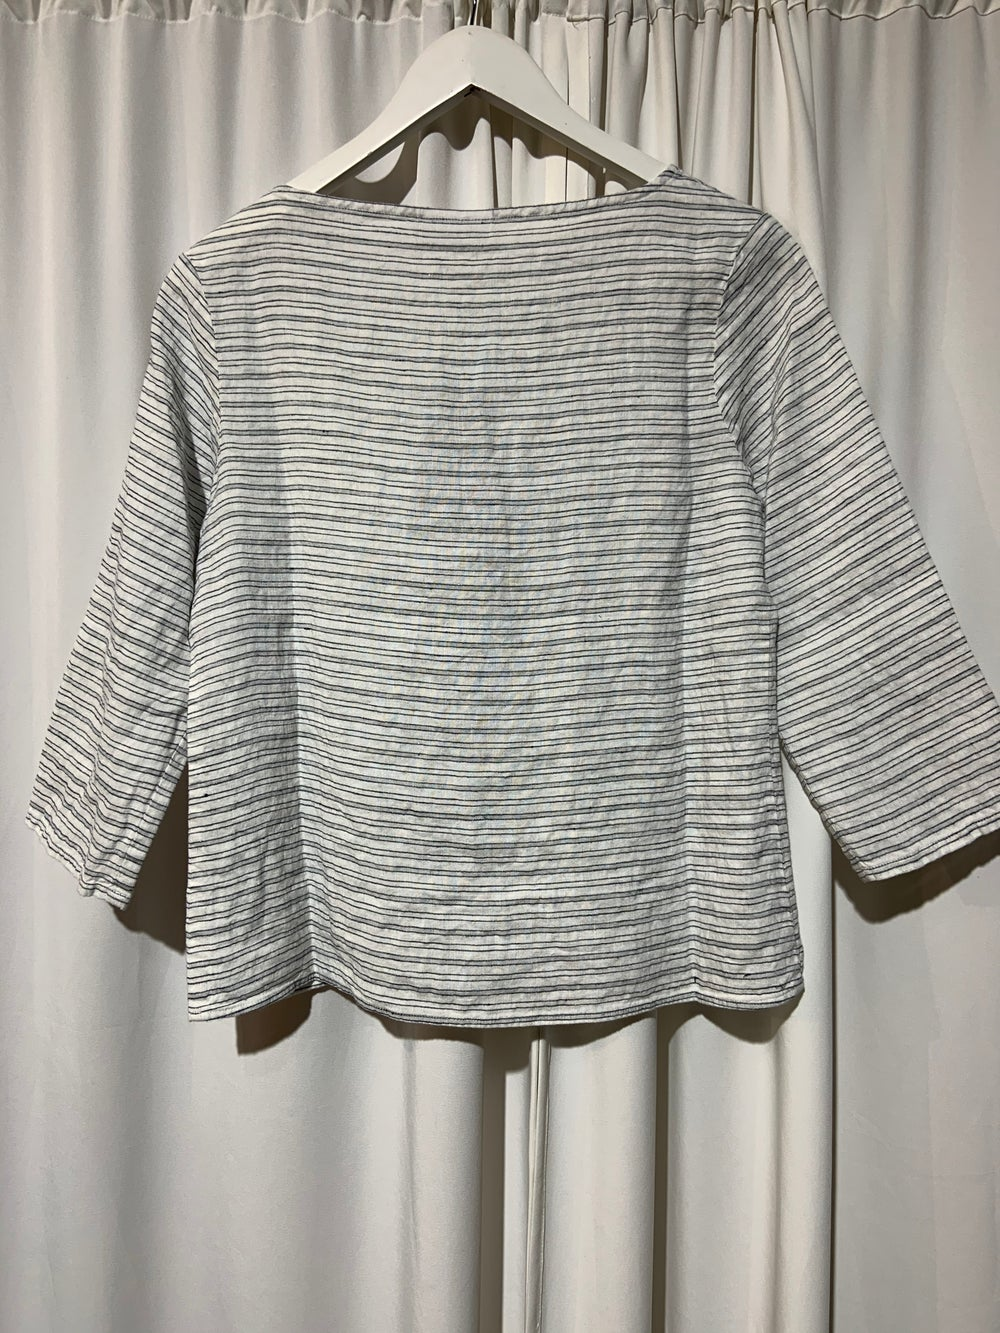 NygardsAnna blouse white stripes